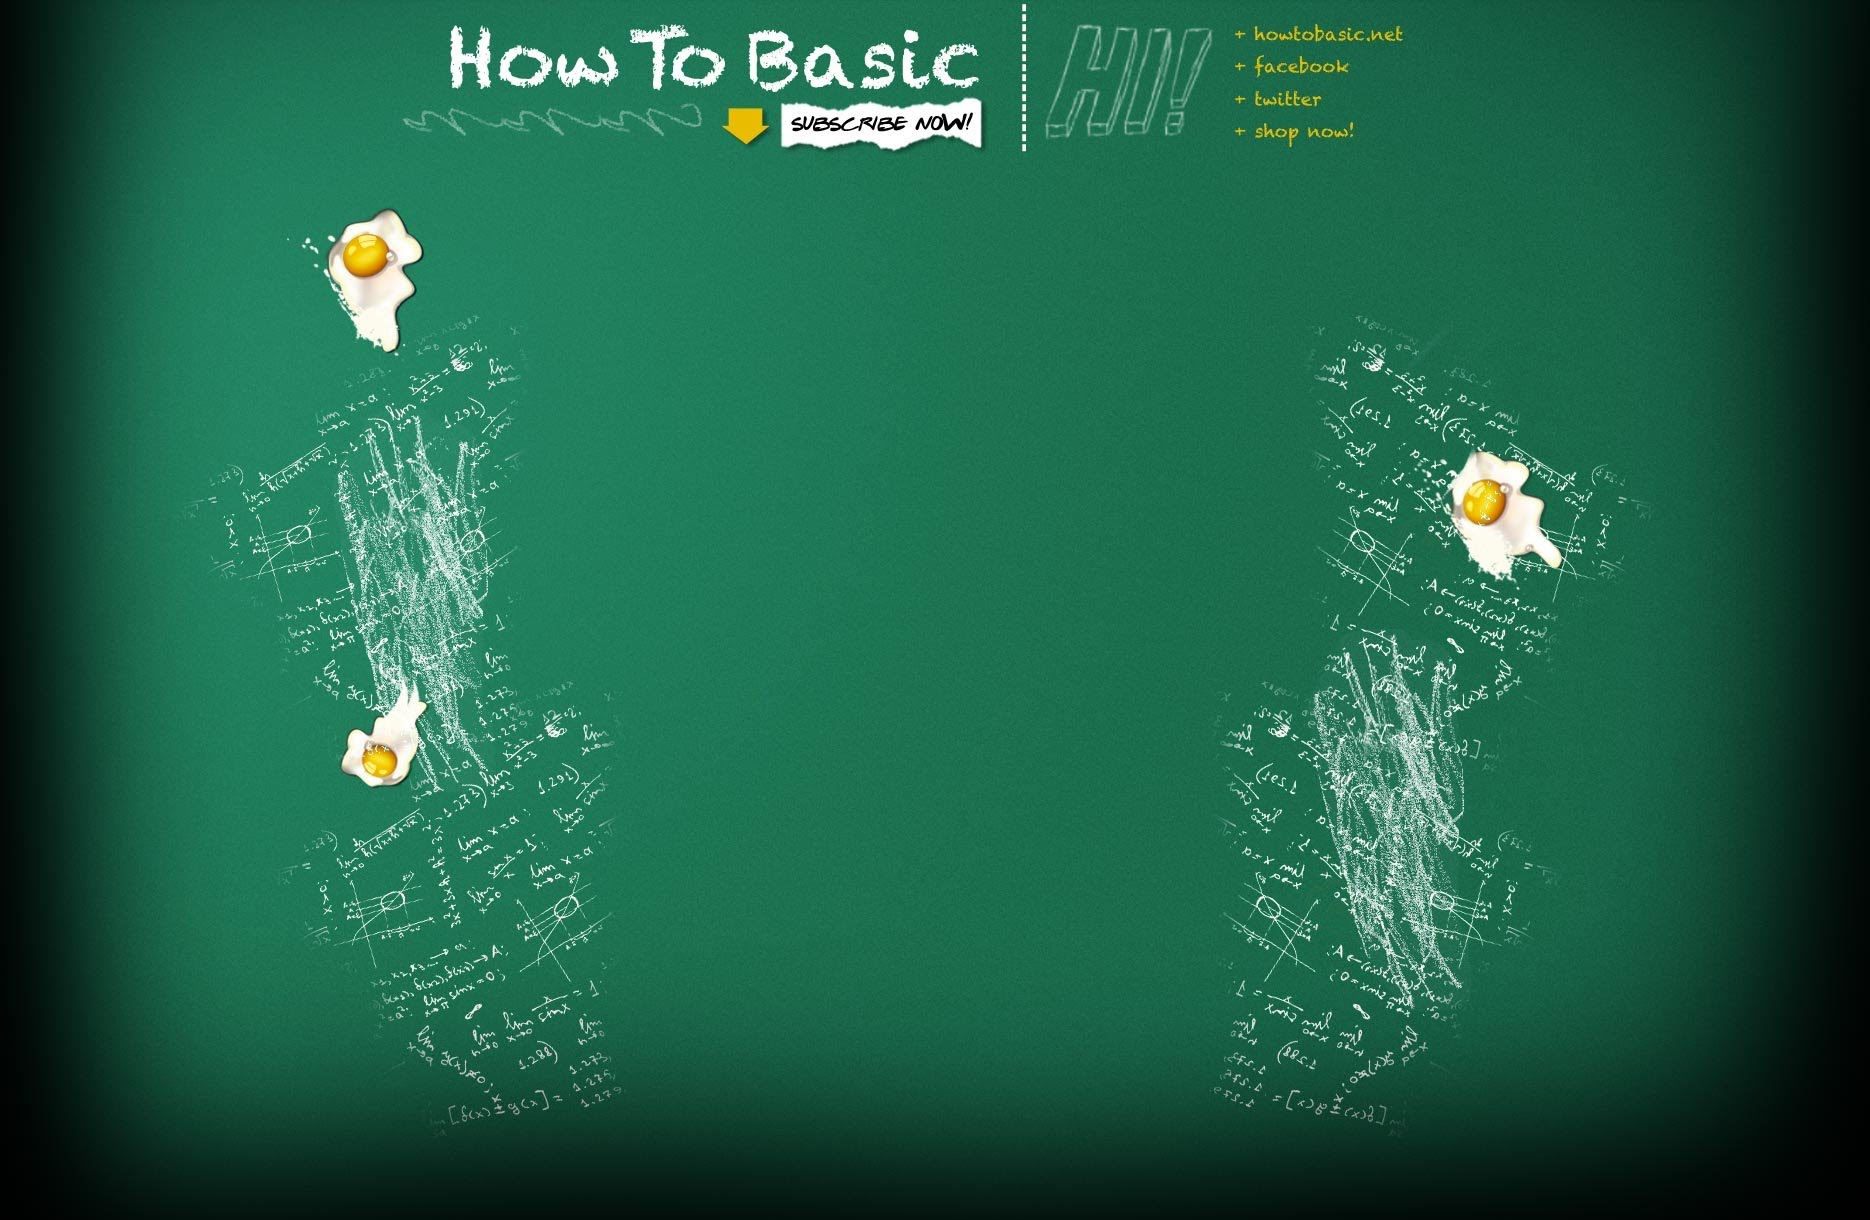 Howtobasic howtobasic wiki fandom powered by wikia ccuart Gallery